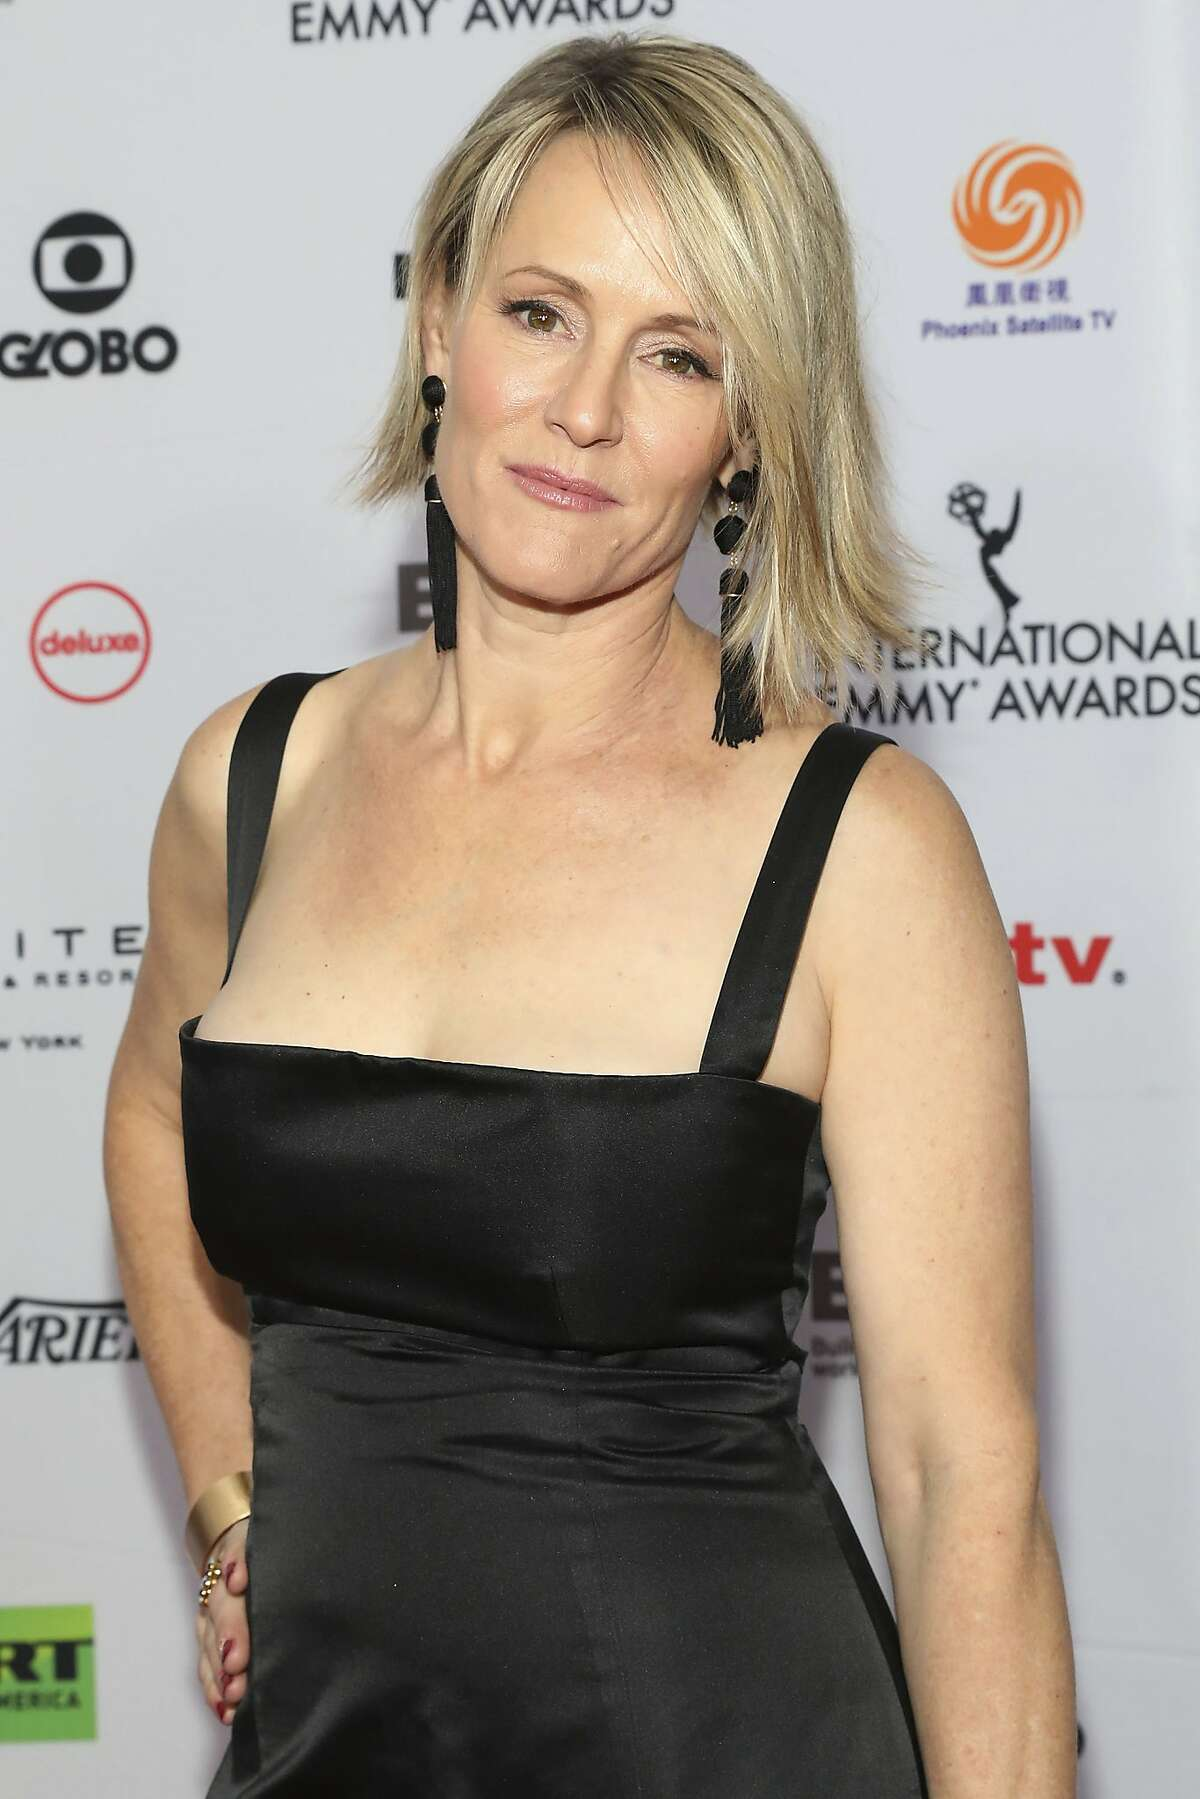 Mary Stuart Masterson attends the 46th International Emmy Awards at The New York Hilton on Monday, Nov. 19, 2018, in New York. (Photo by Amy Sussman/Invision/AP)